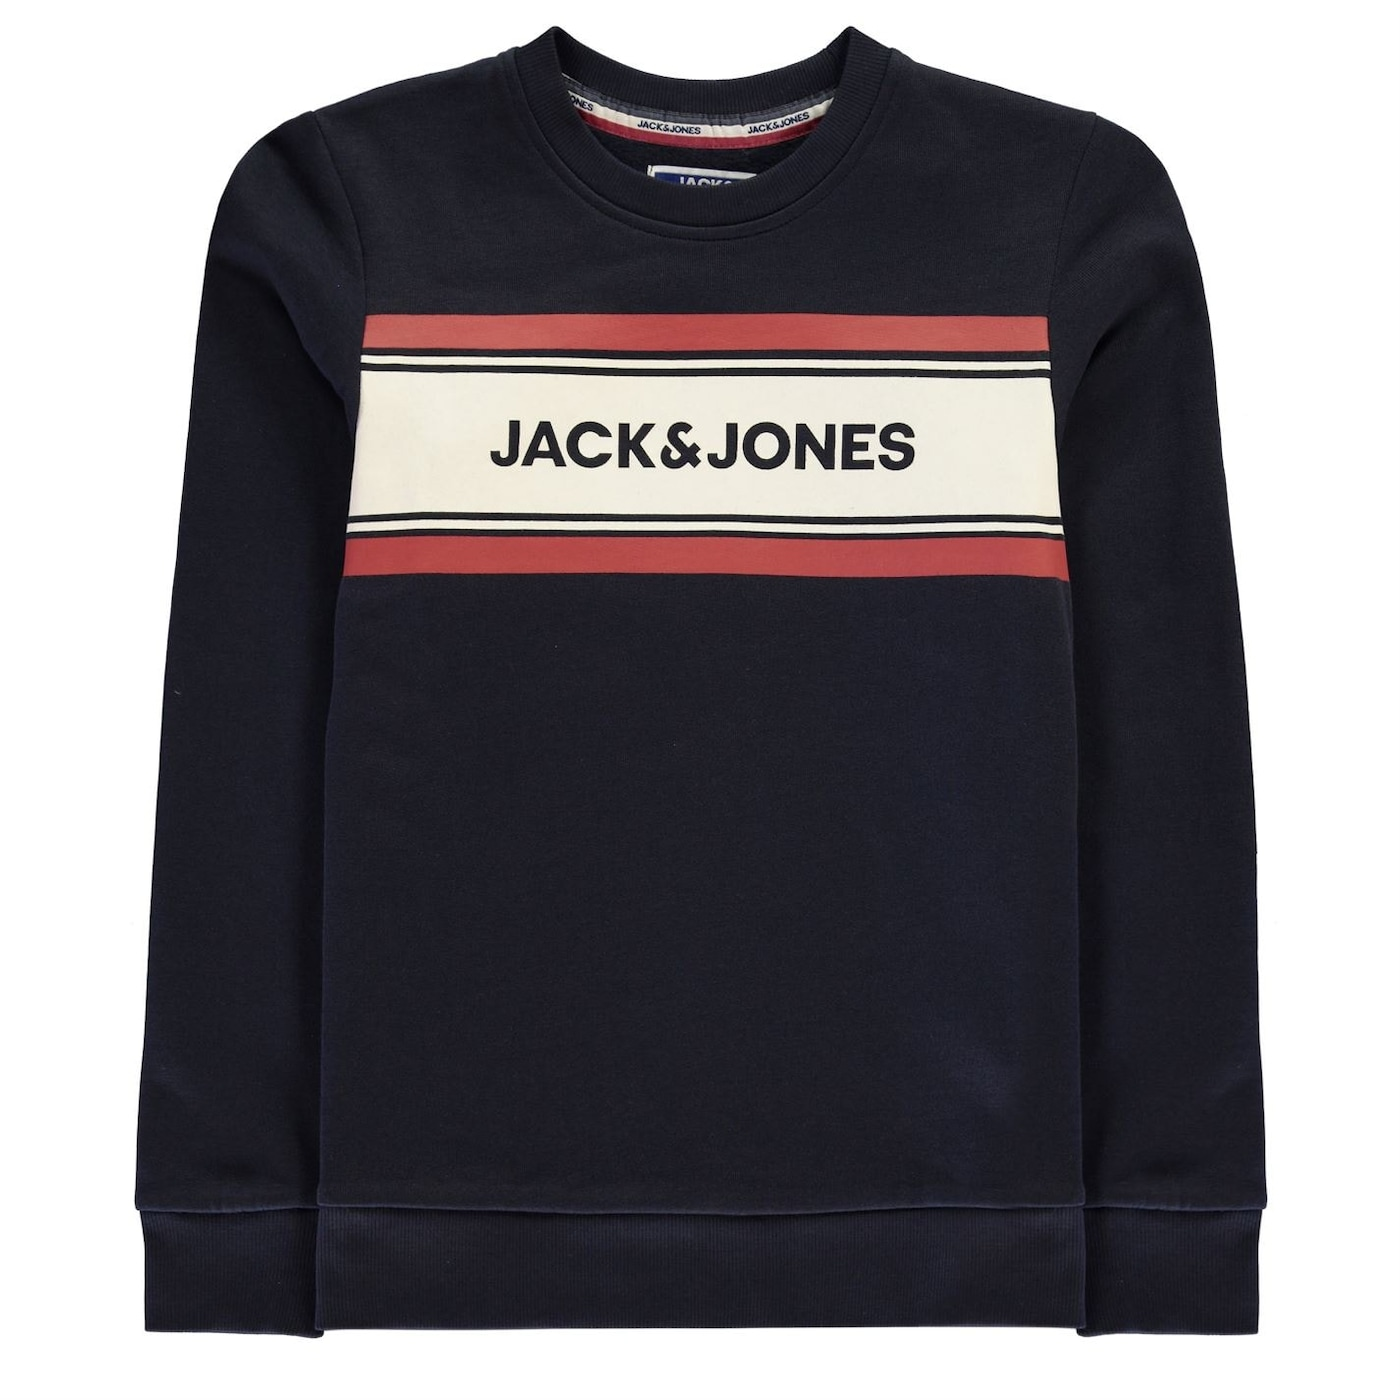 Jack and Jones and Jones Originals Shake Crew Sweatshirt